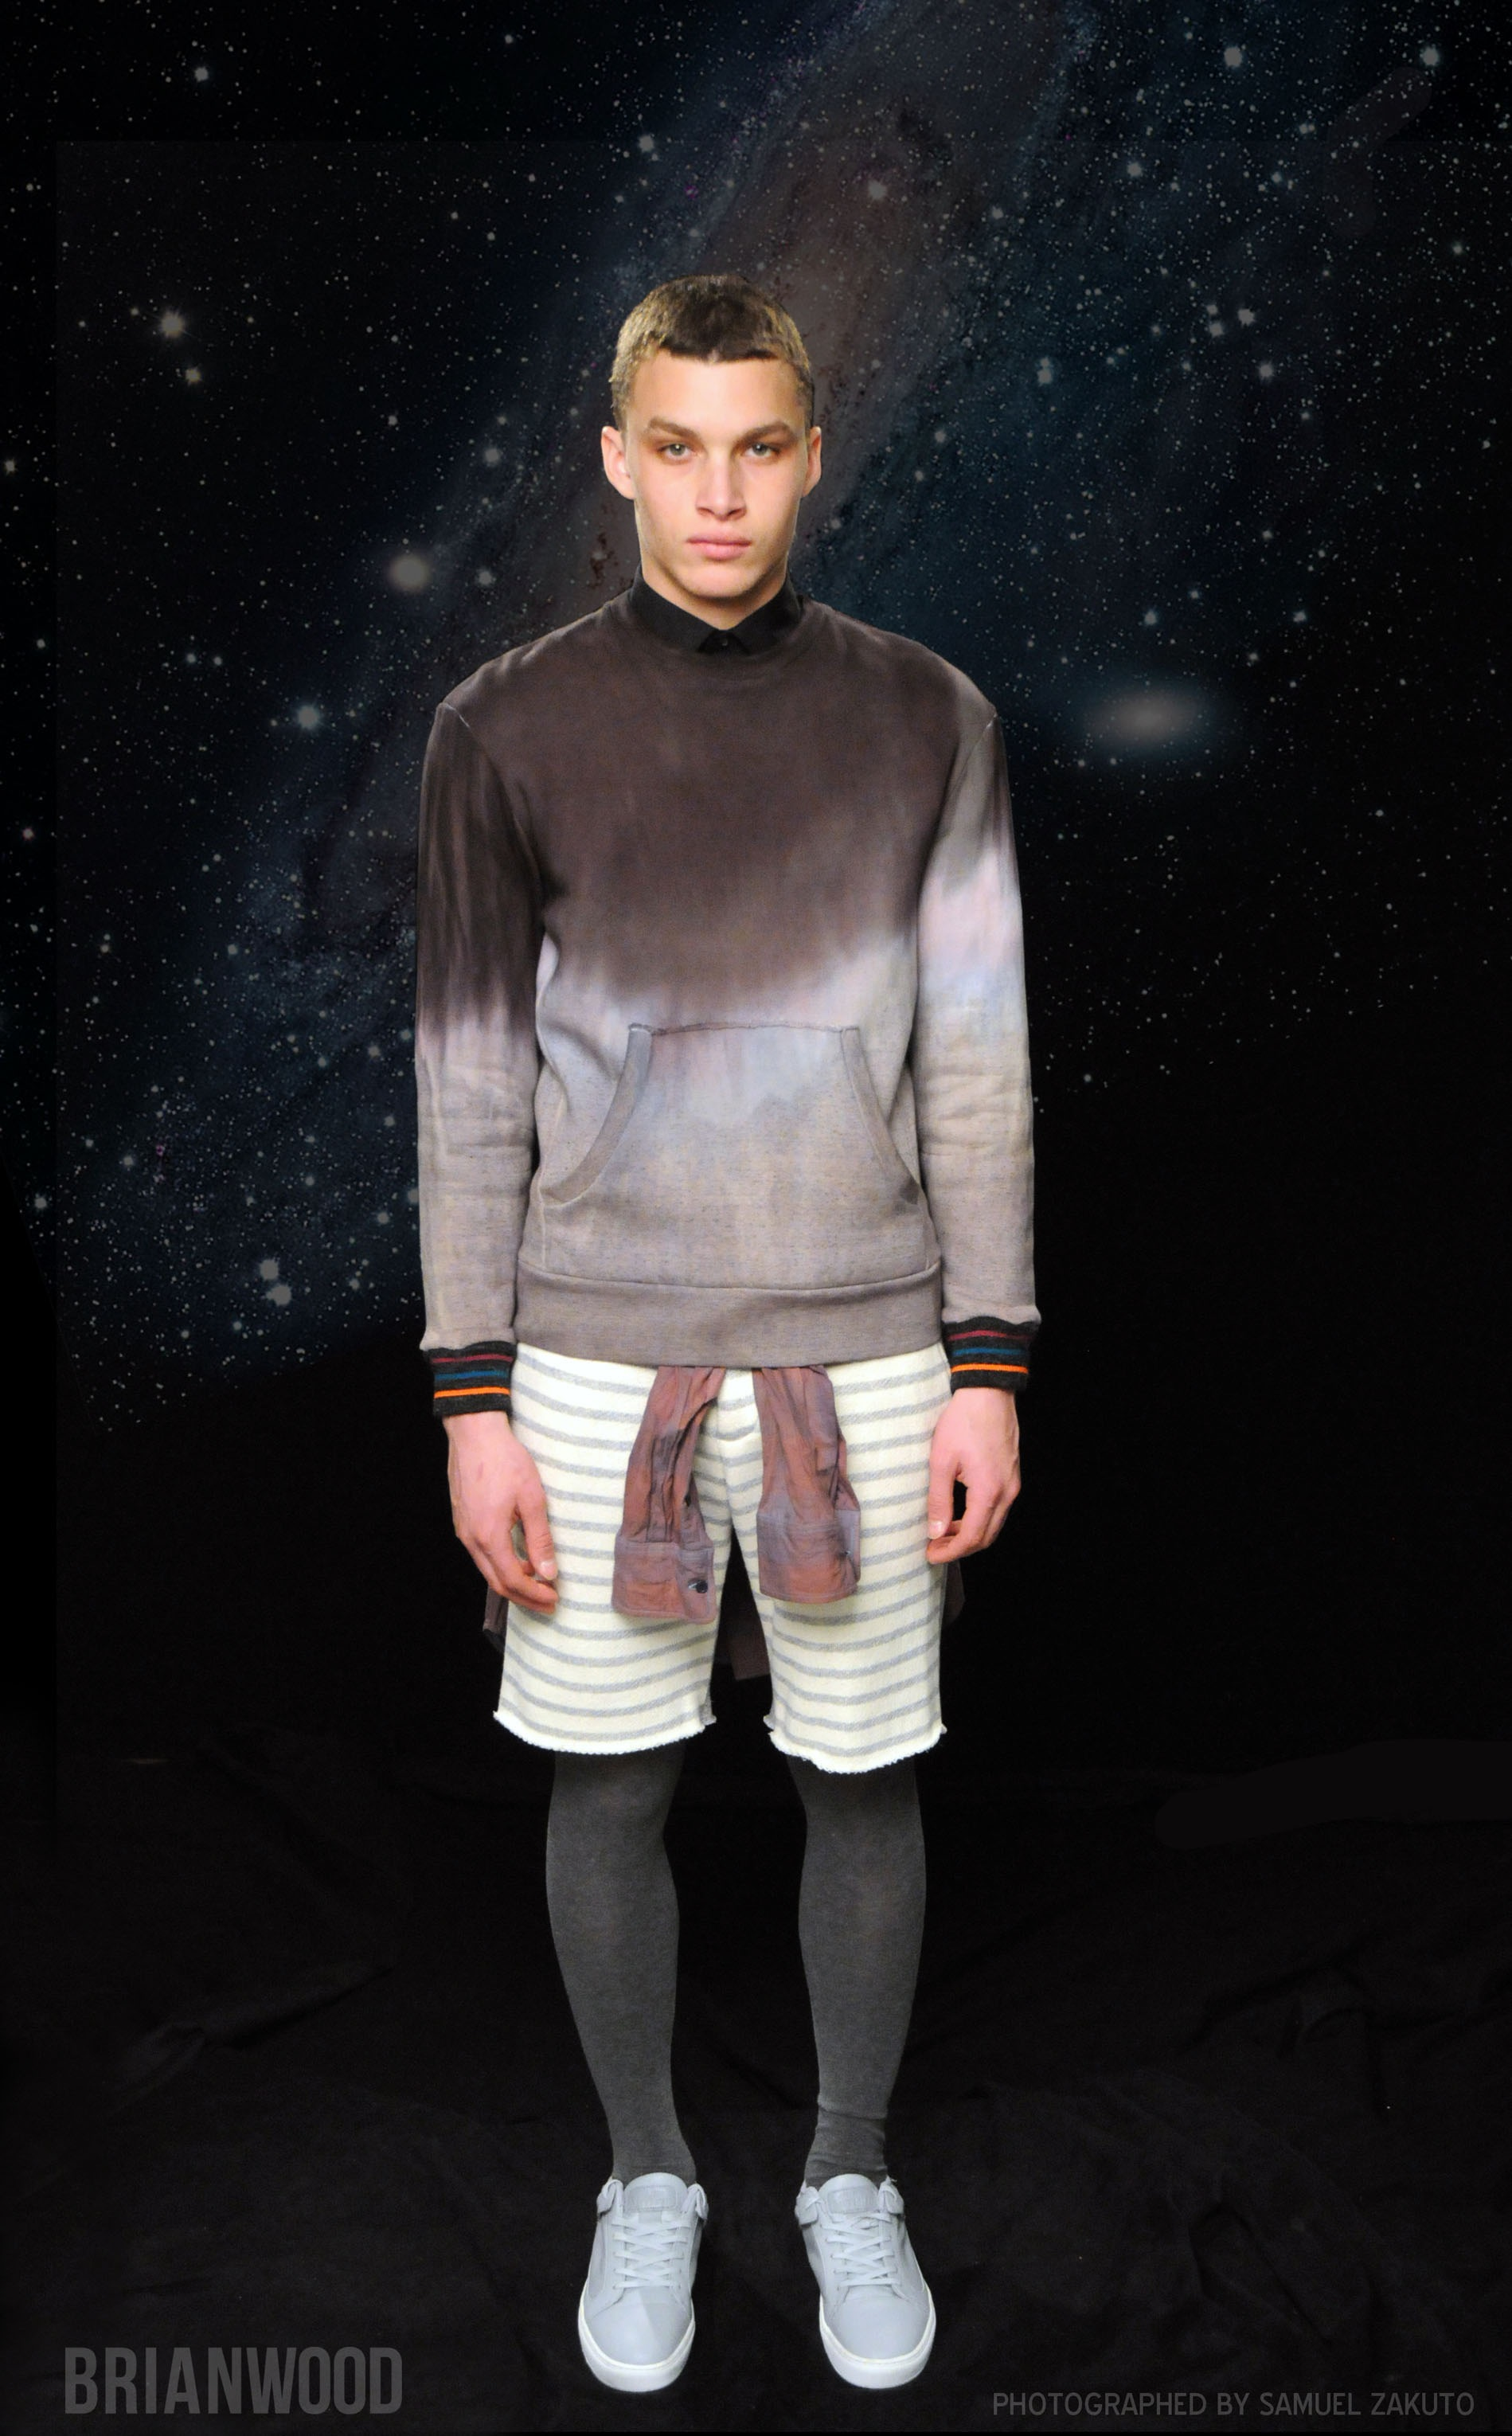 Brian Wood Takes to the Galaxies for their Fall/Winter 2013 Collection